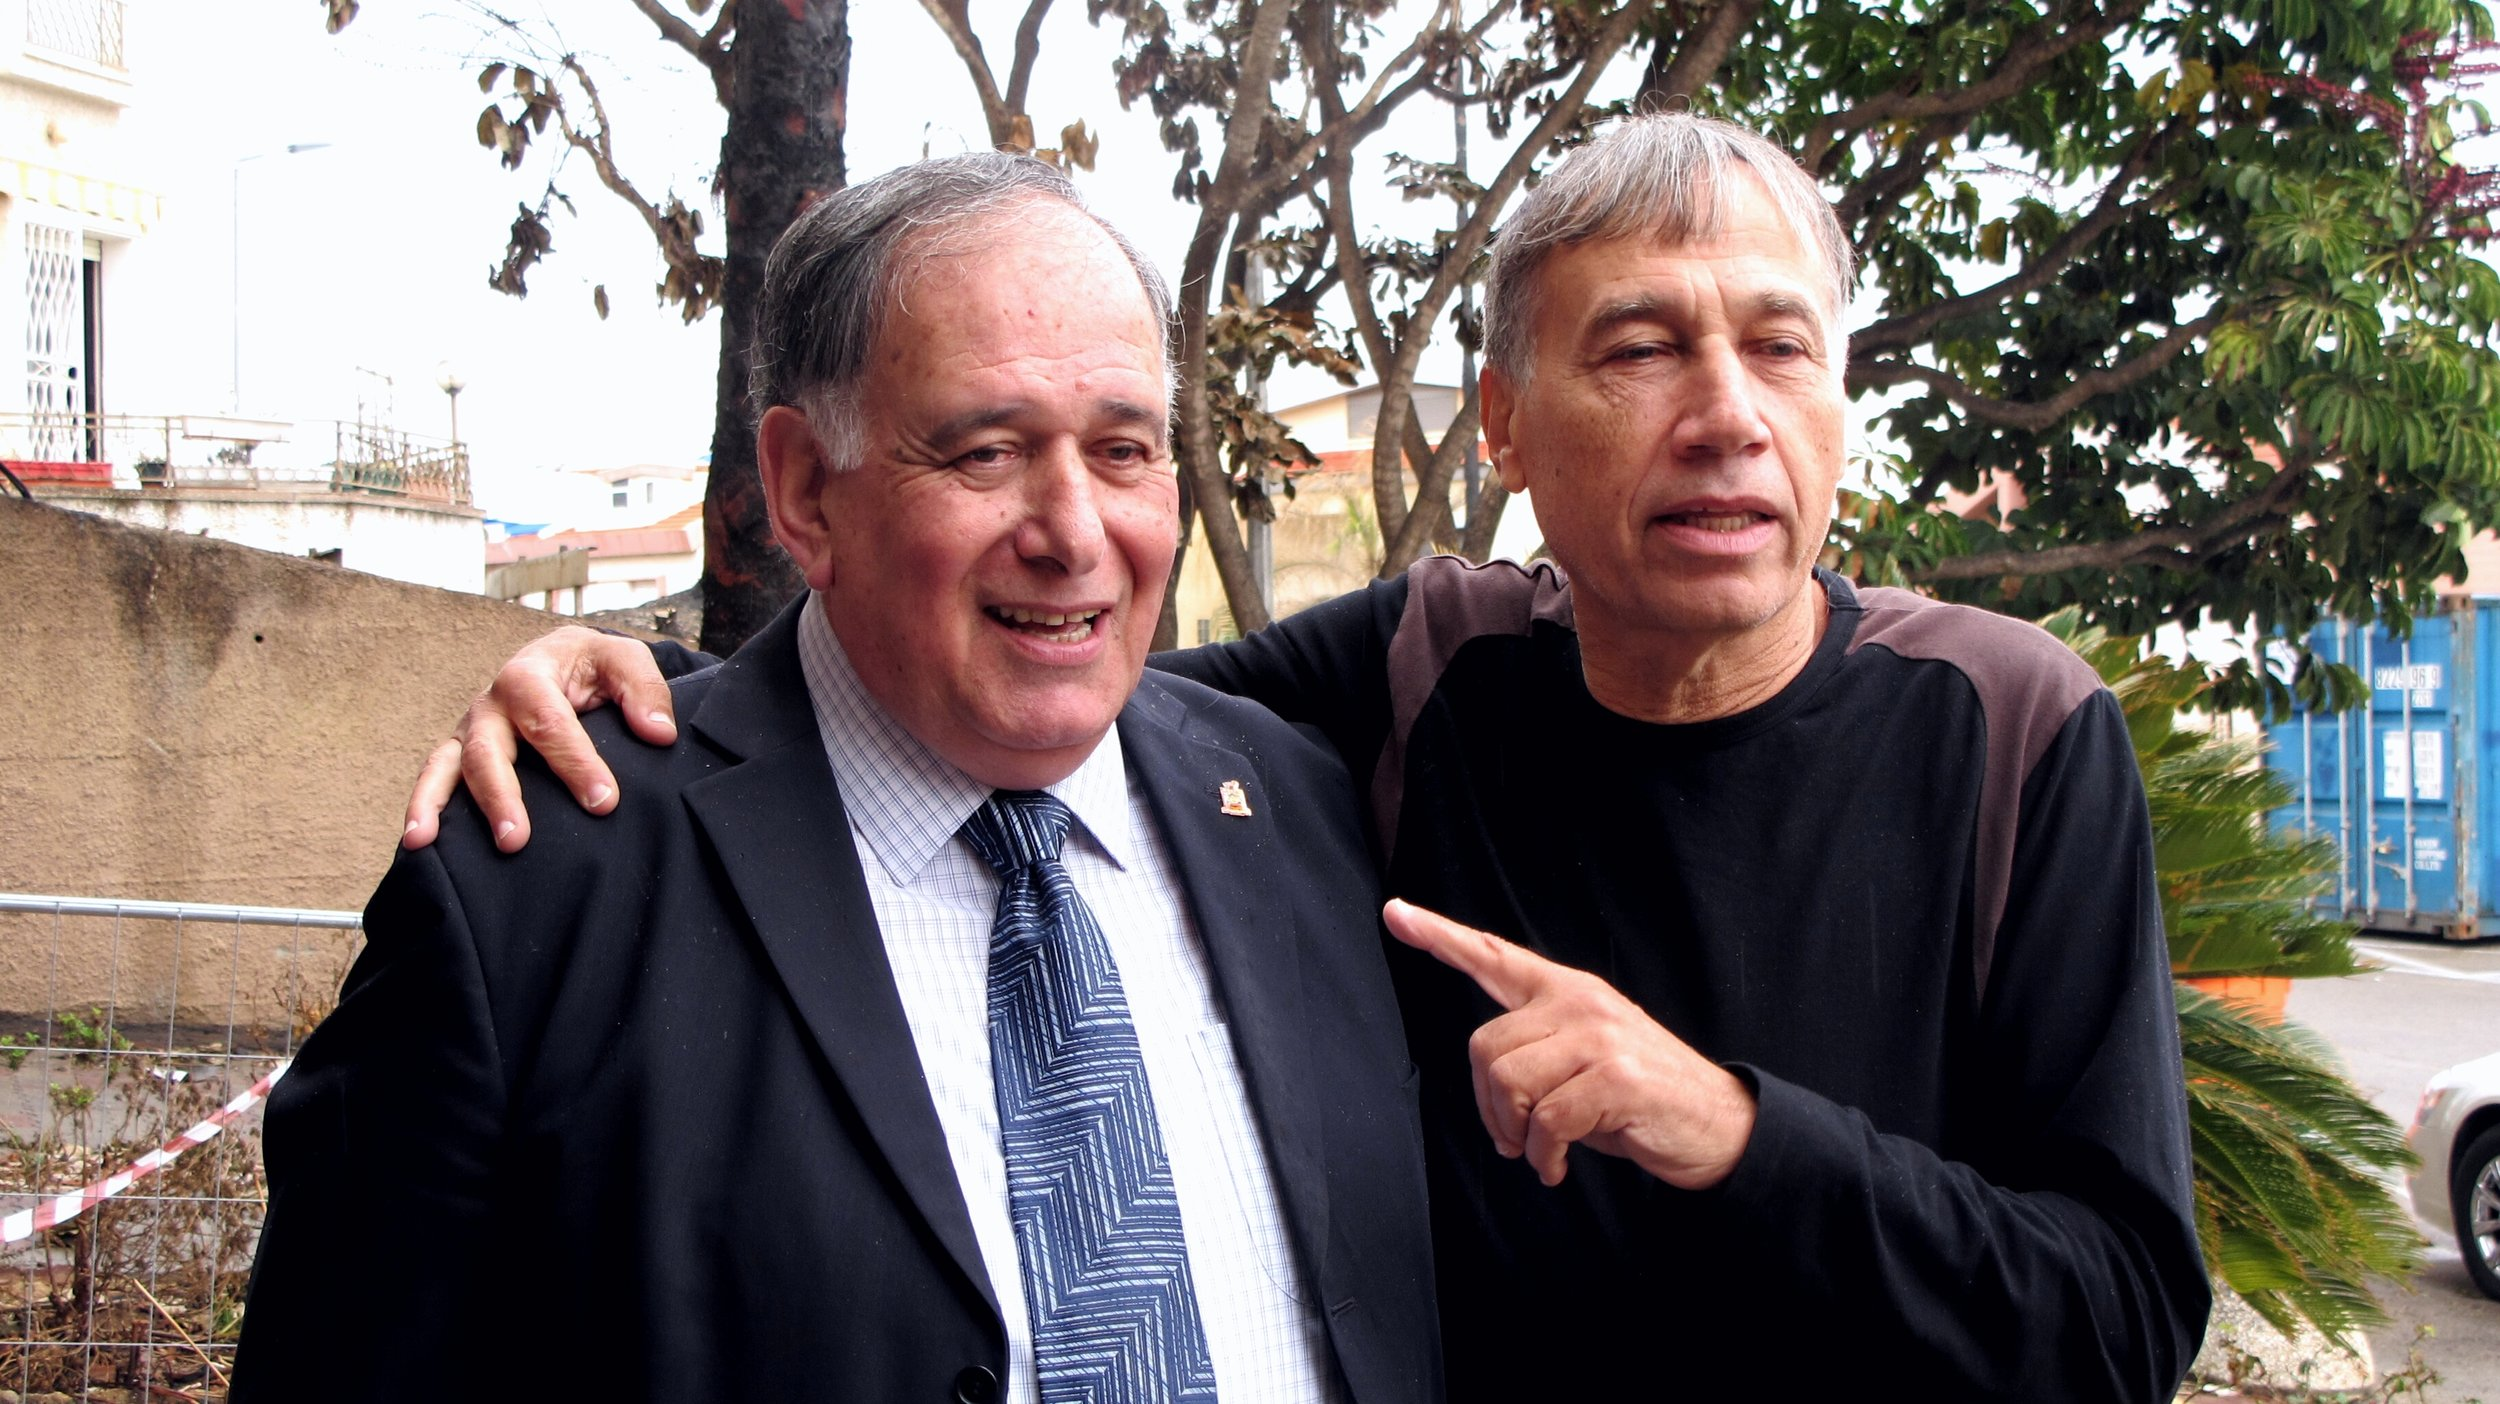 """Haifa Mayor Yona Yahav (left) with one of the city's residents, Meir Barzilay. """"The municipality is doing a great job to help us...We are grateful for the rapid support,"""" Barzilay says in the aftermath of the fires that recently ravaged Haifa. Credit: Franziska Knupper."""